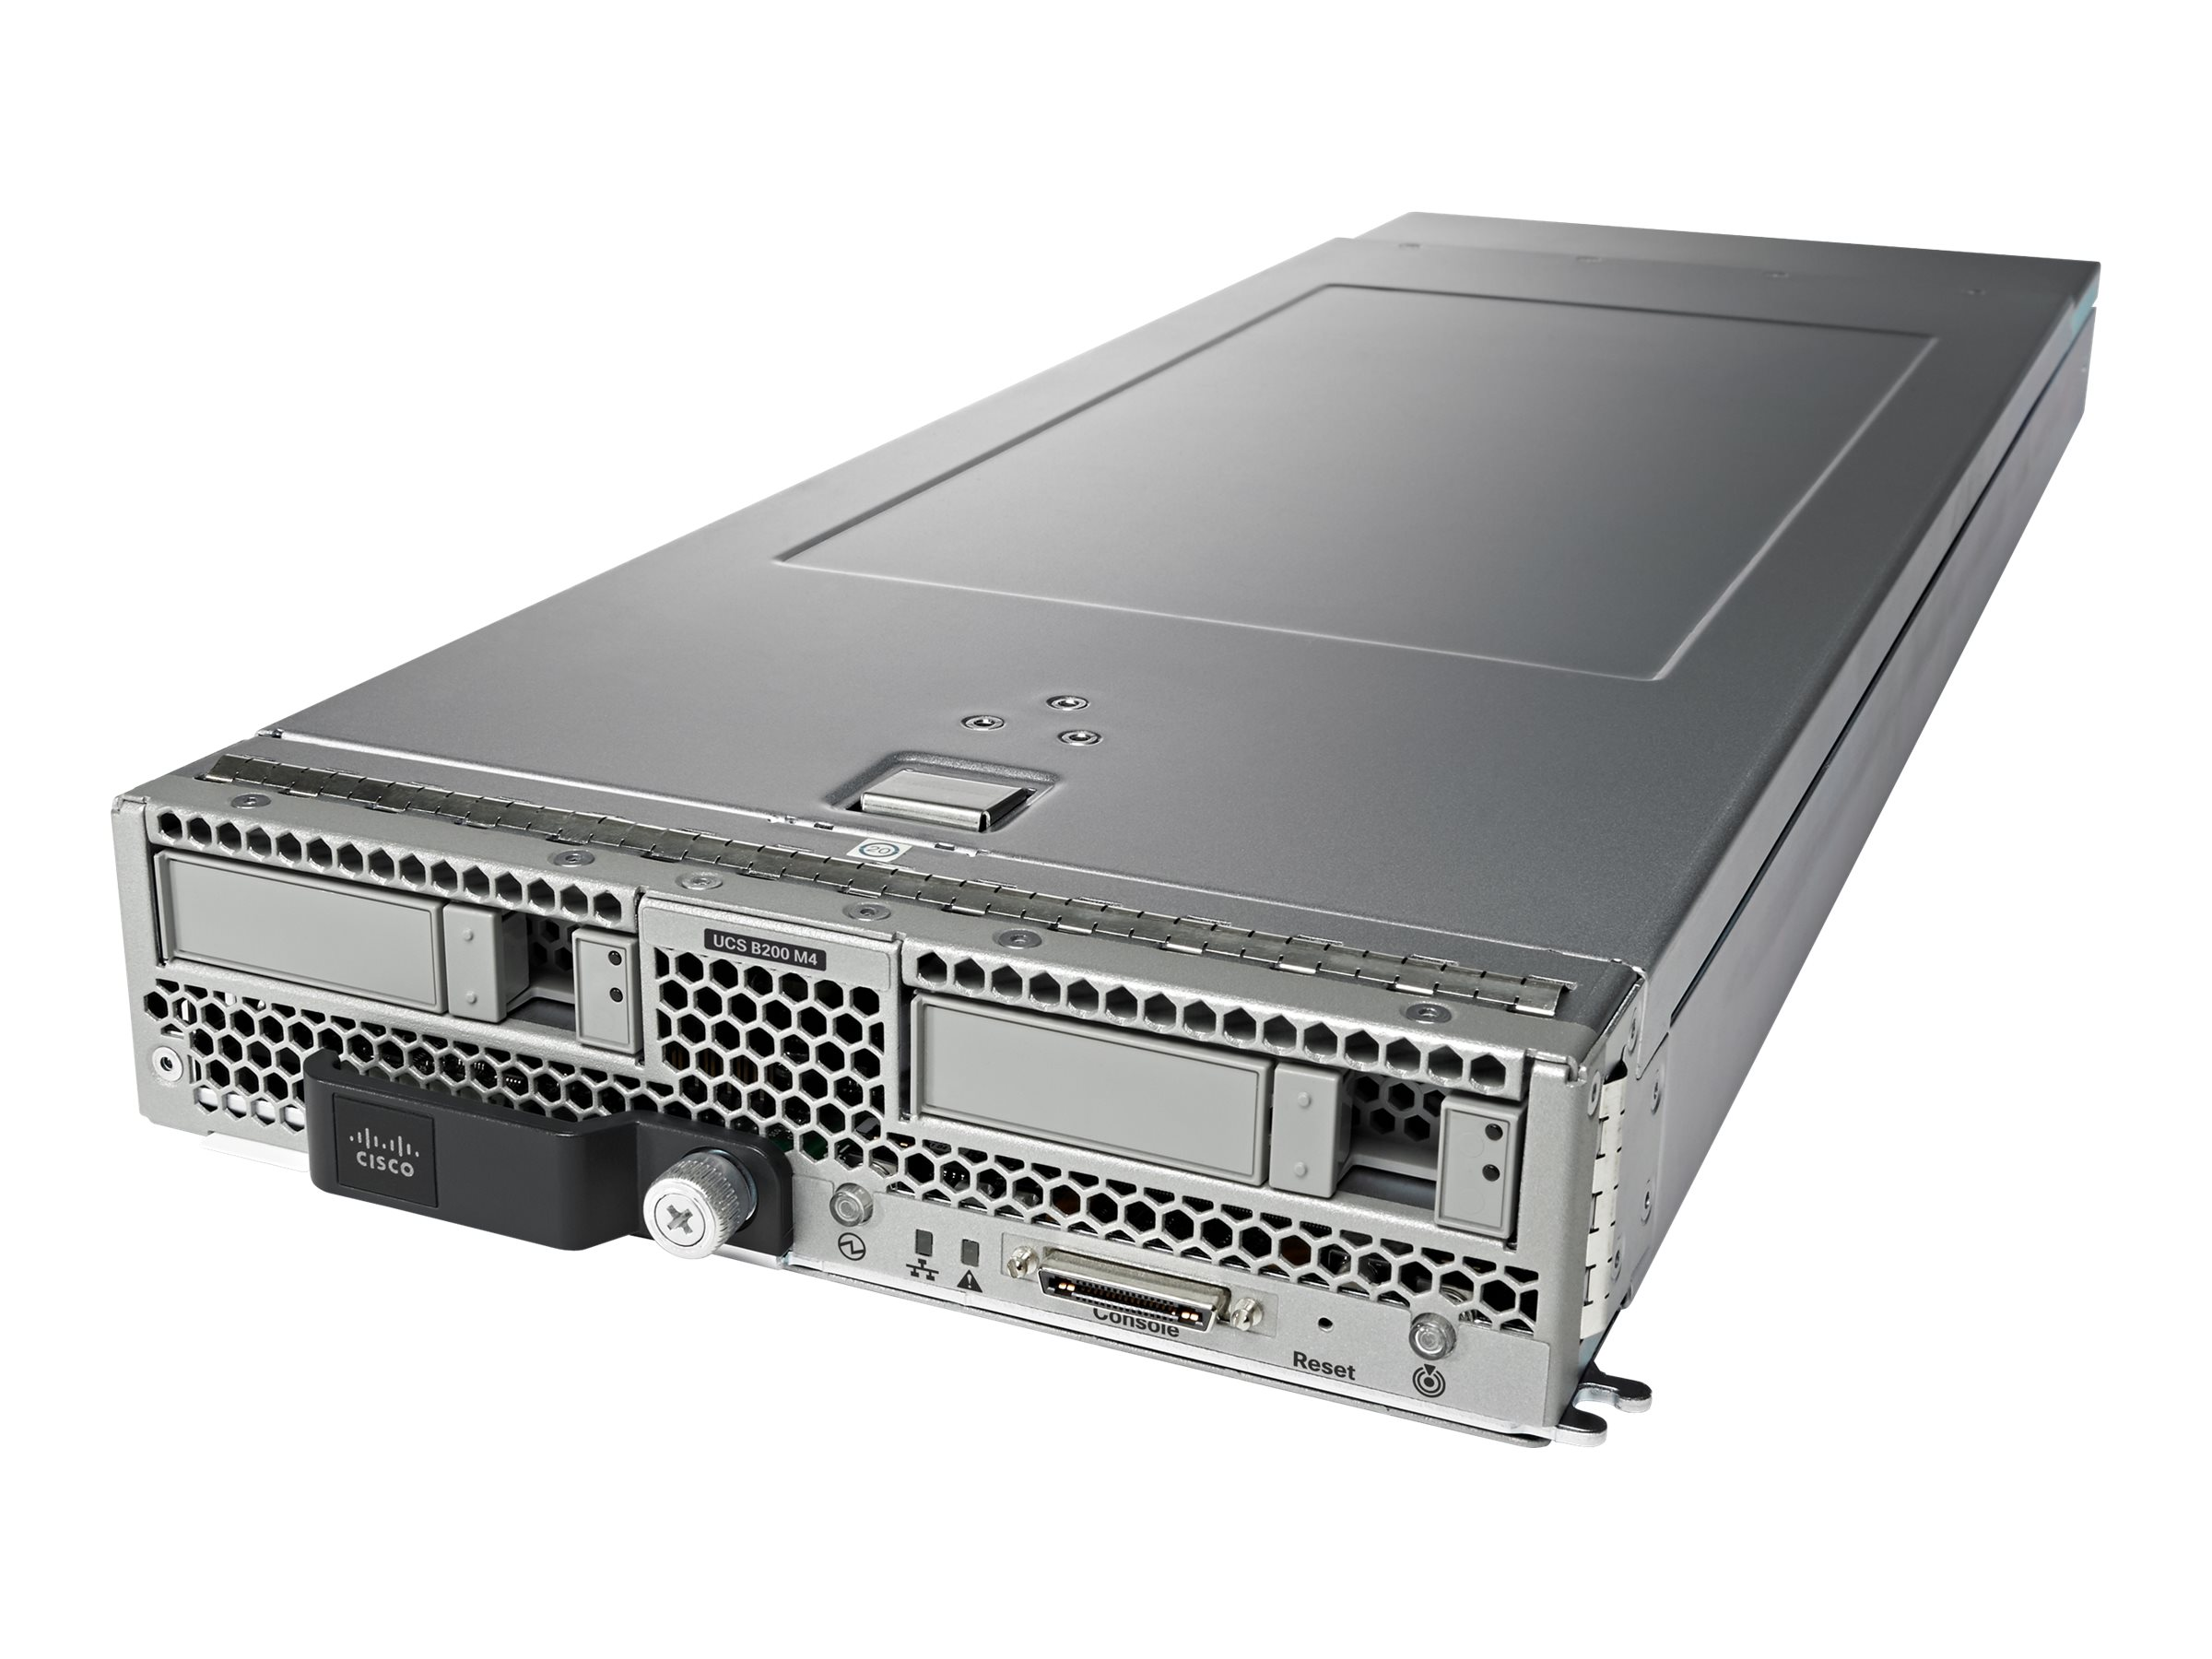 Cisco UCS-SP-B200M4-S2 Image 1